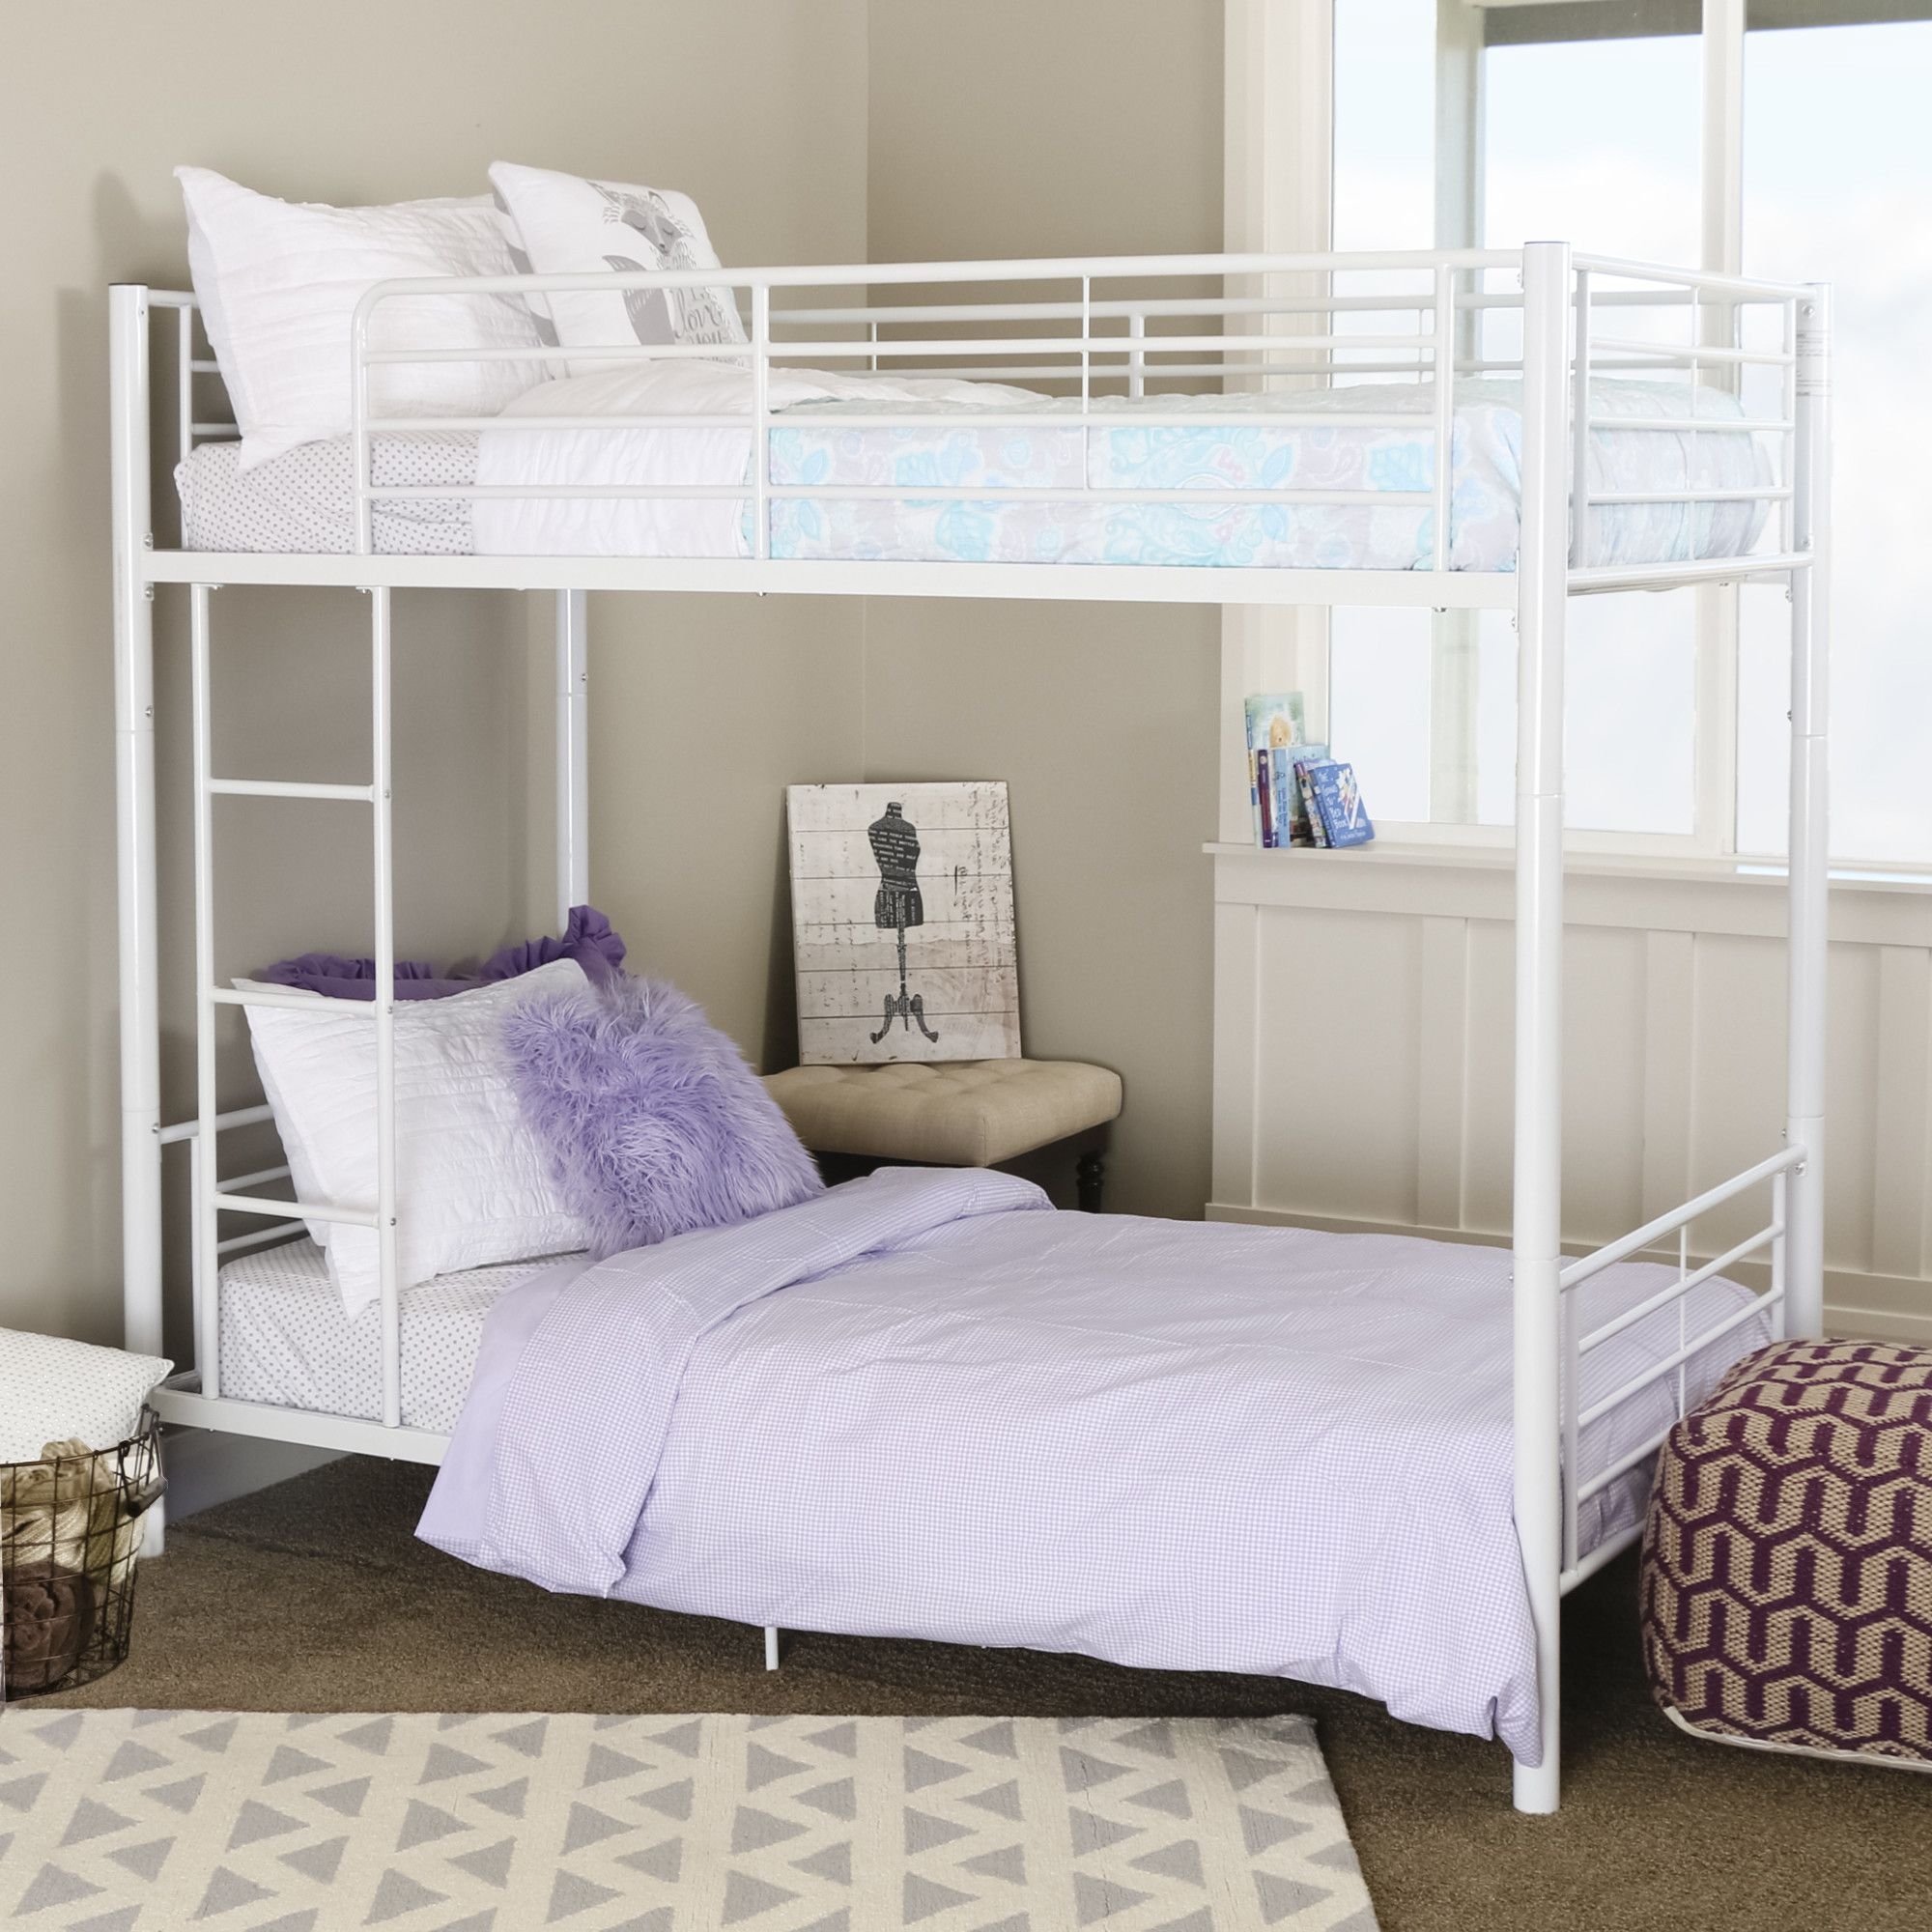 Shop AllModern for All Kids' Beds for the best selection